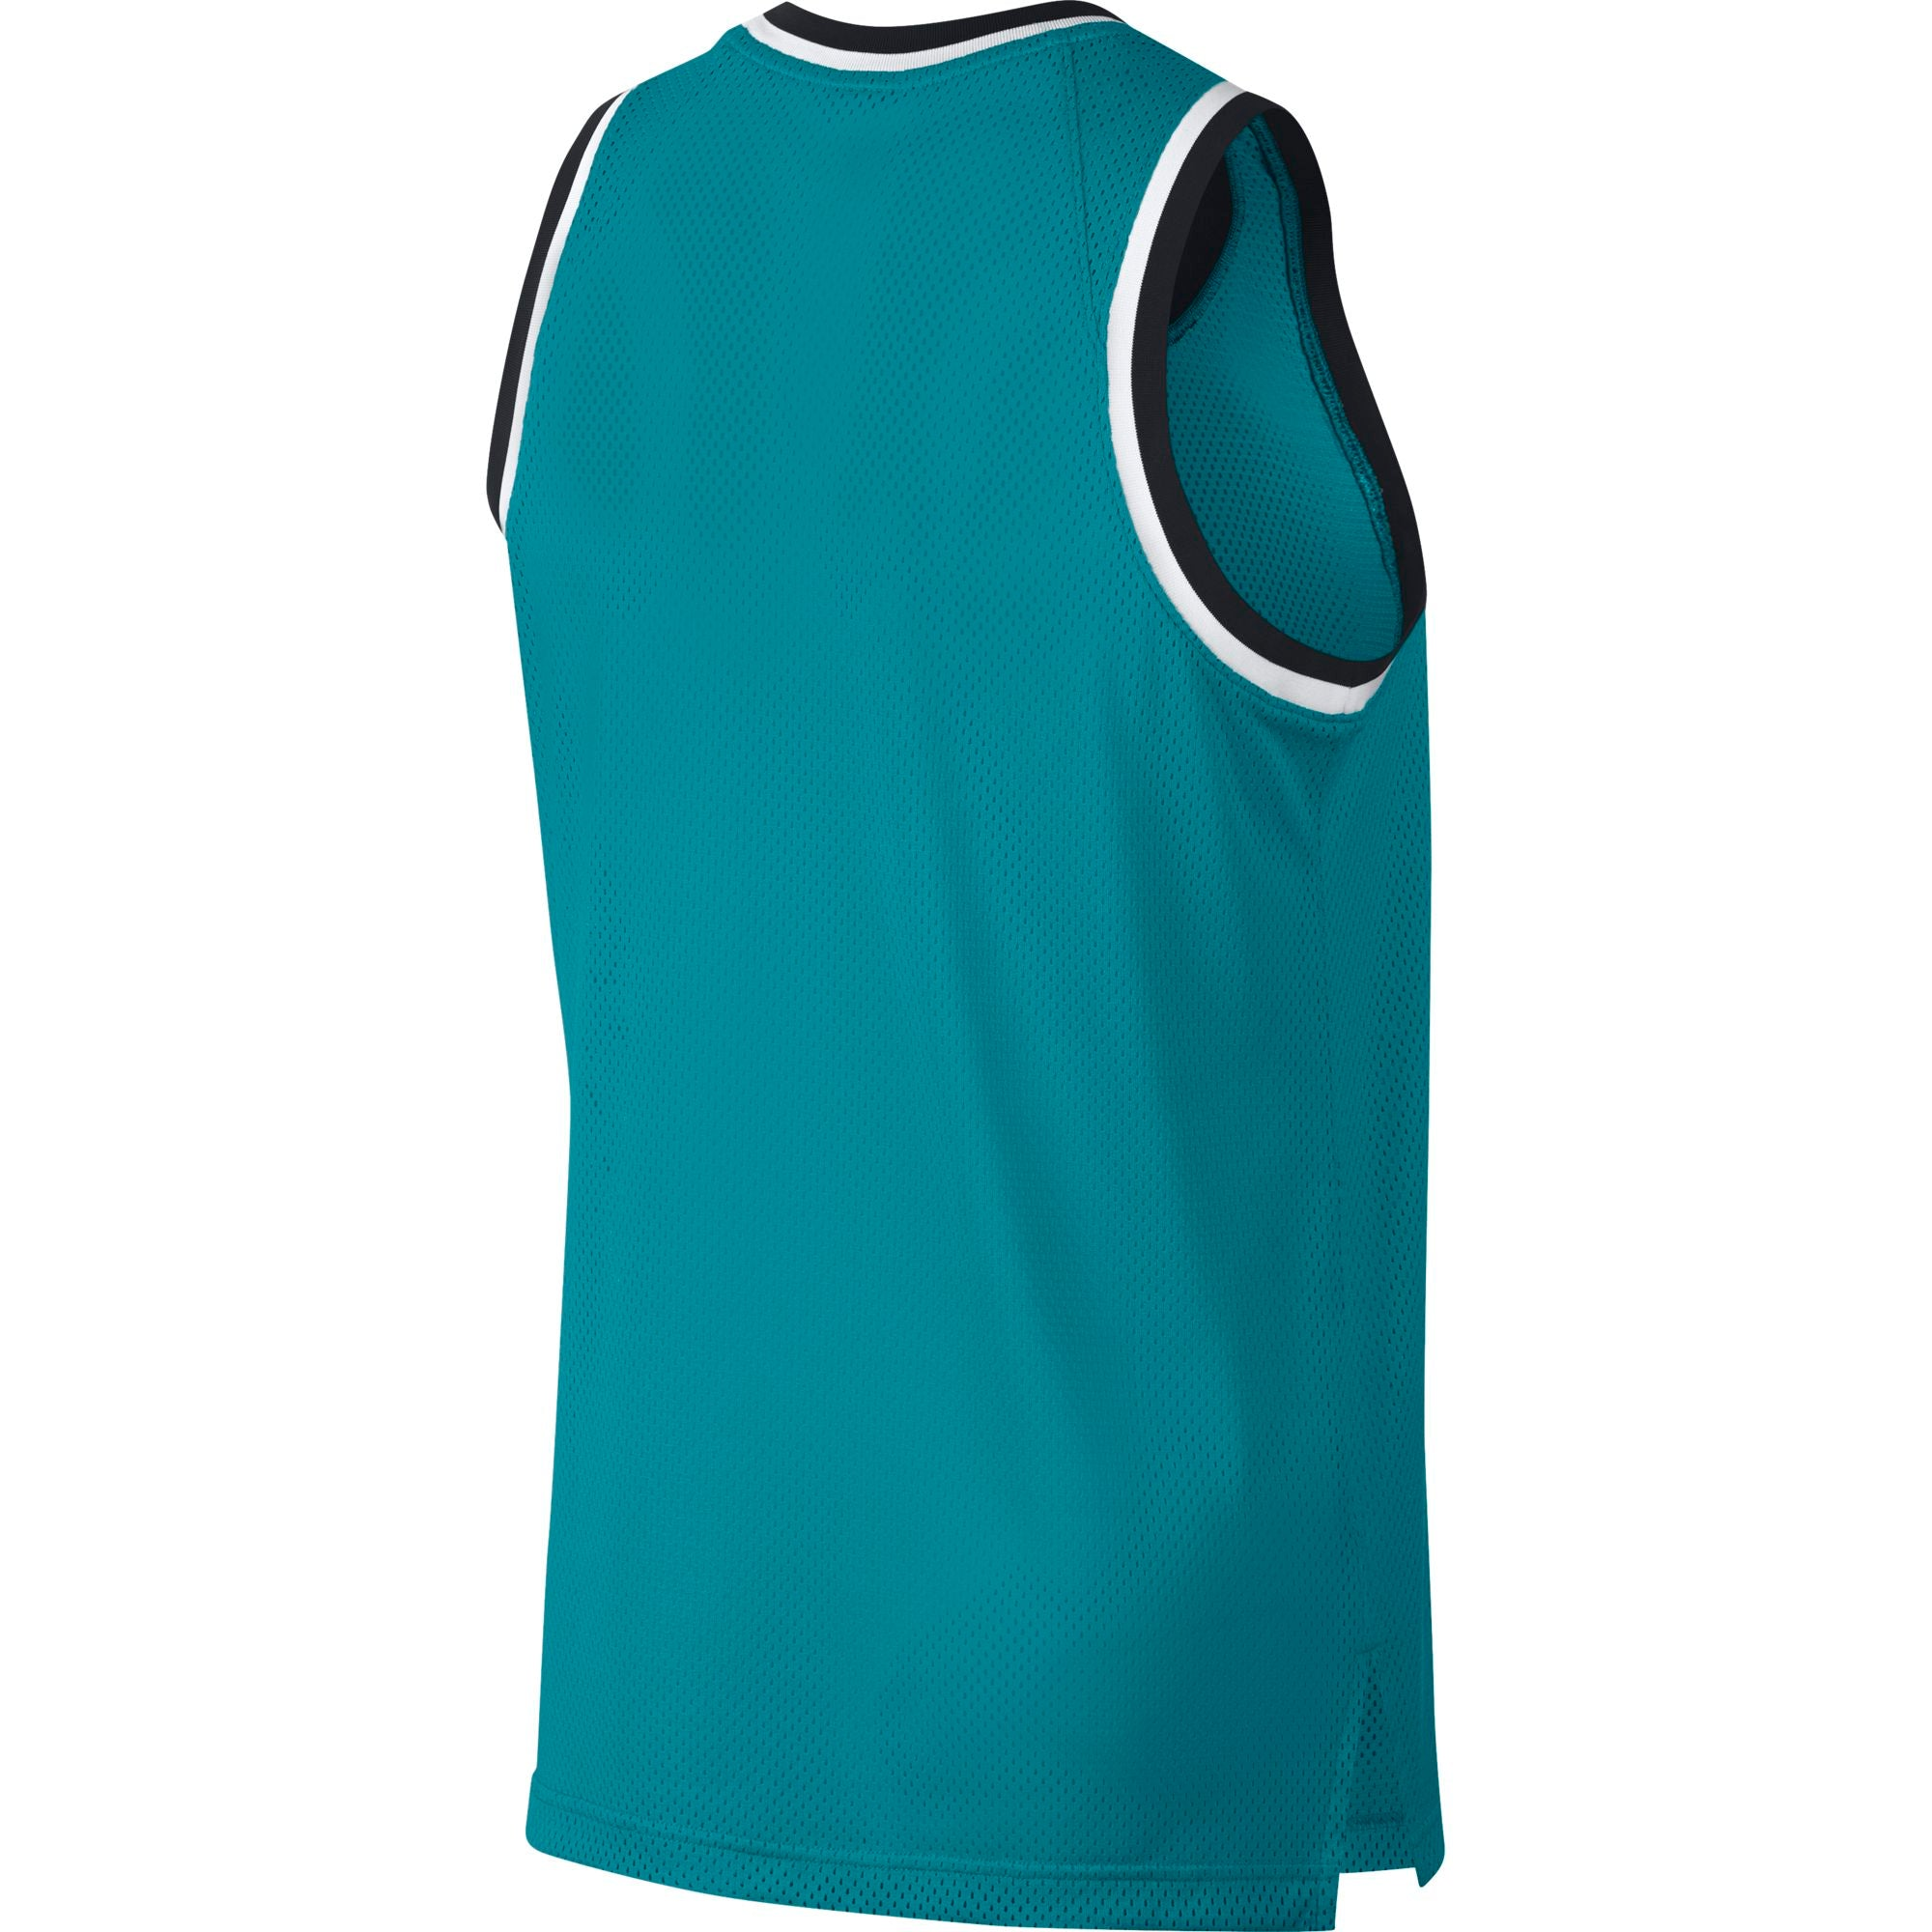 Nike Basketball Dri-fit Classic Jersey - Spirit Teal/University Red